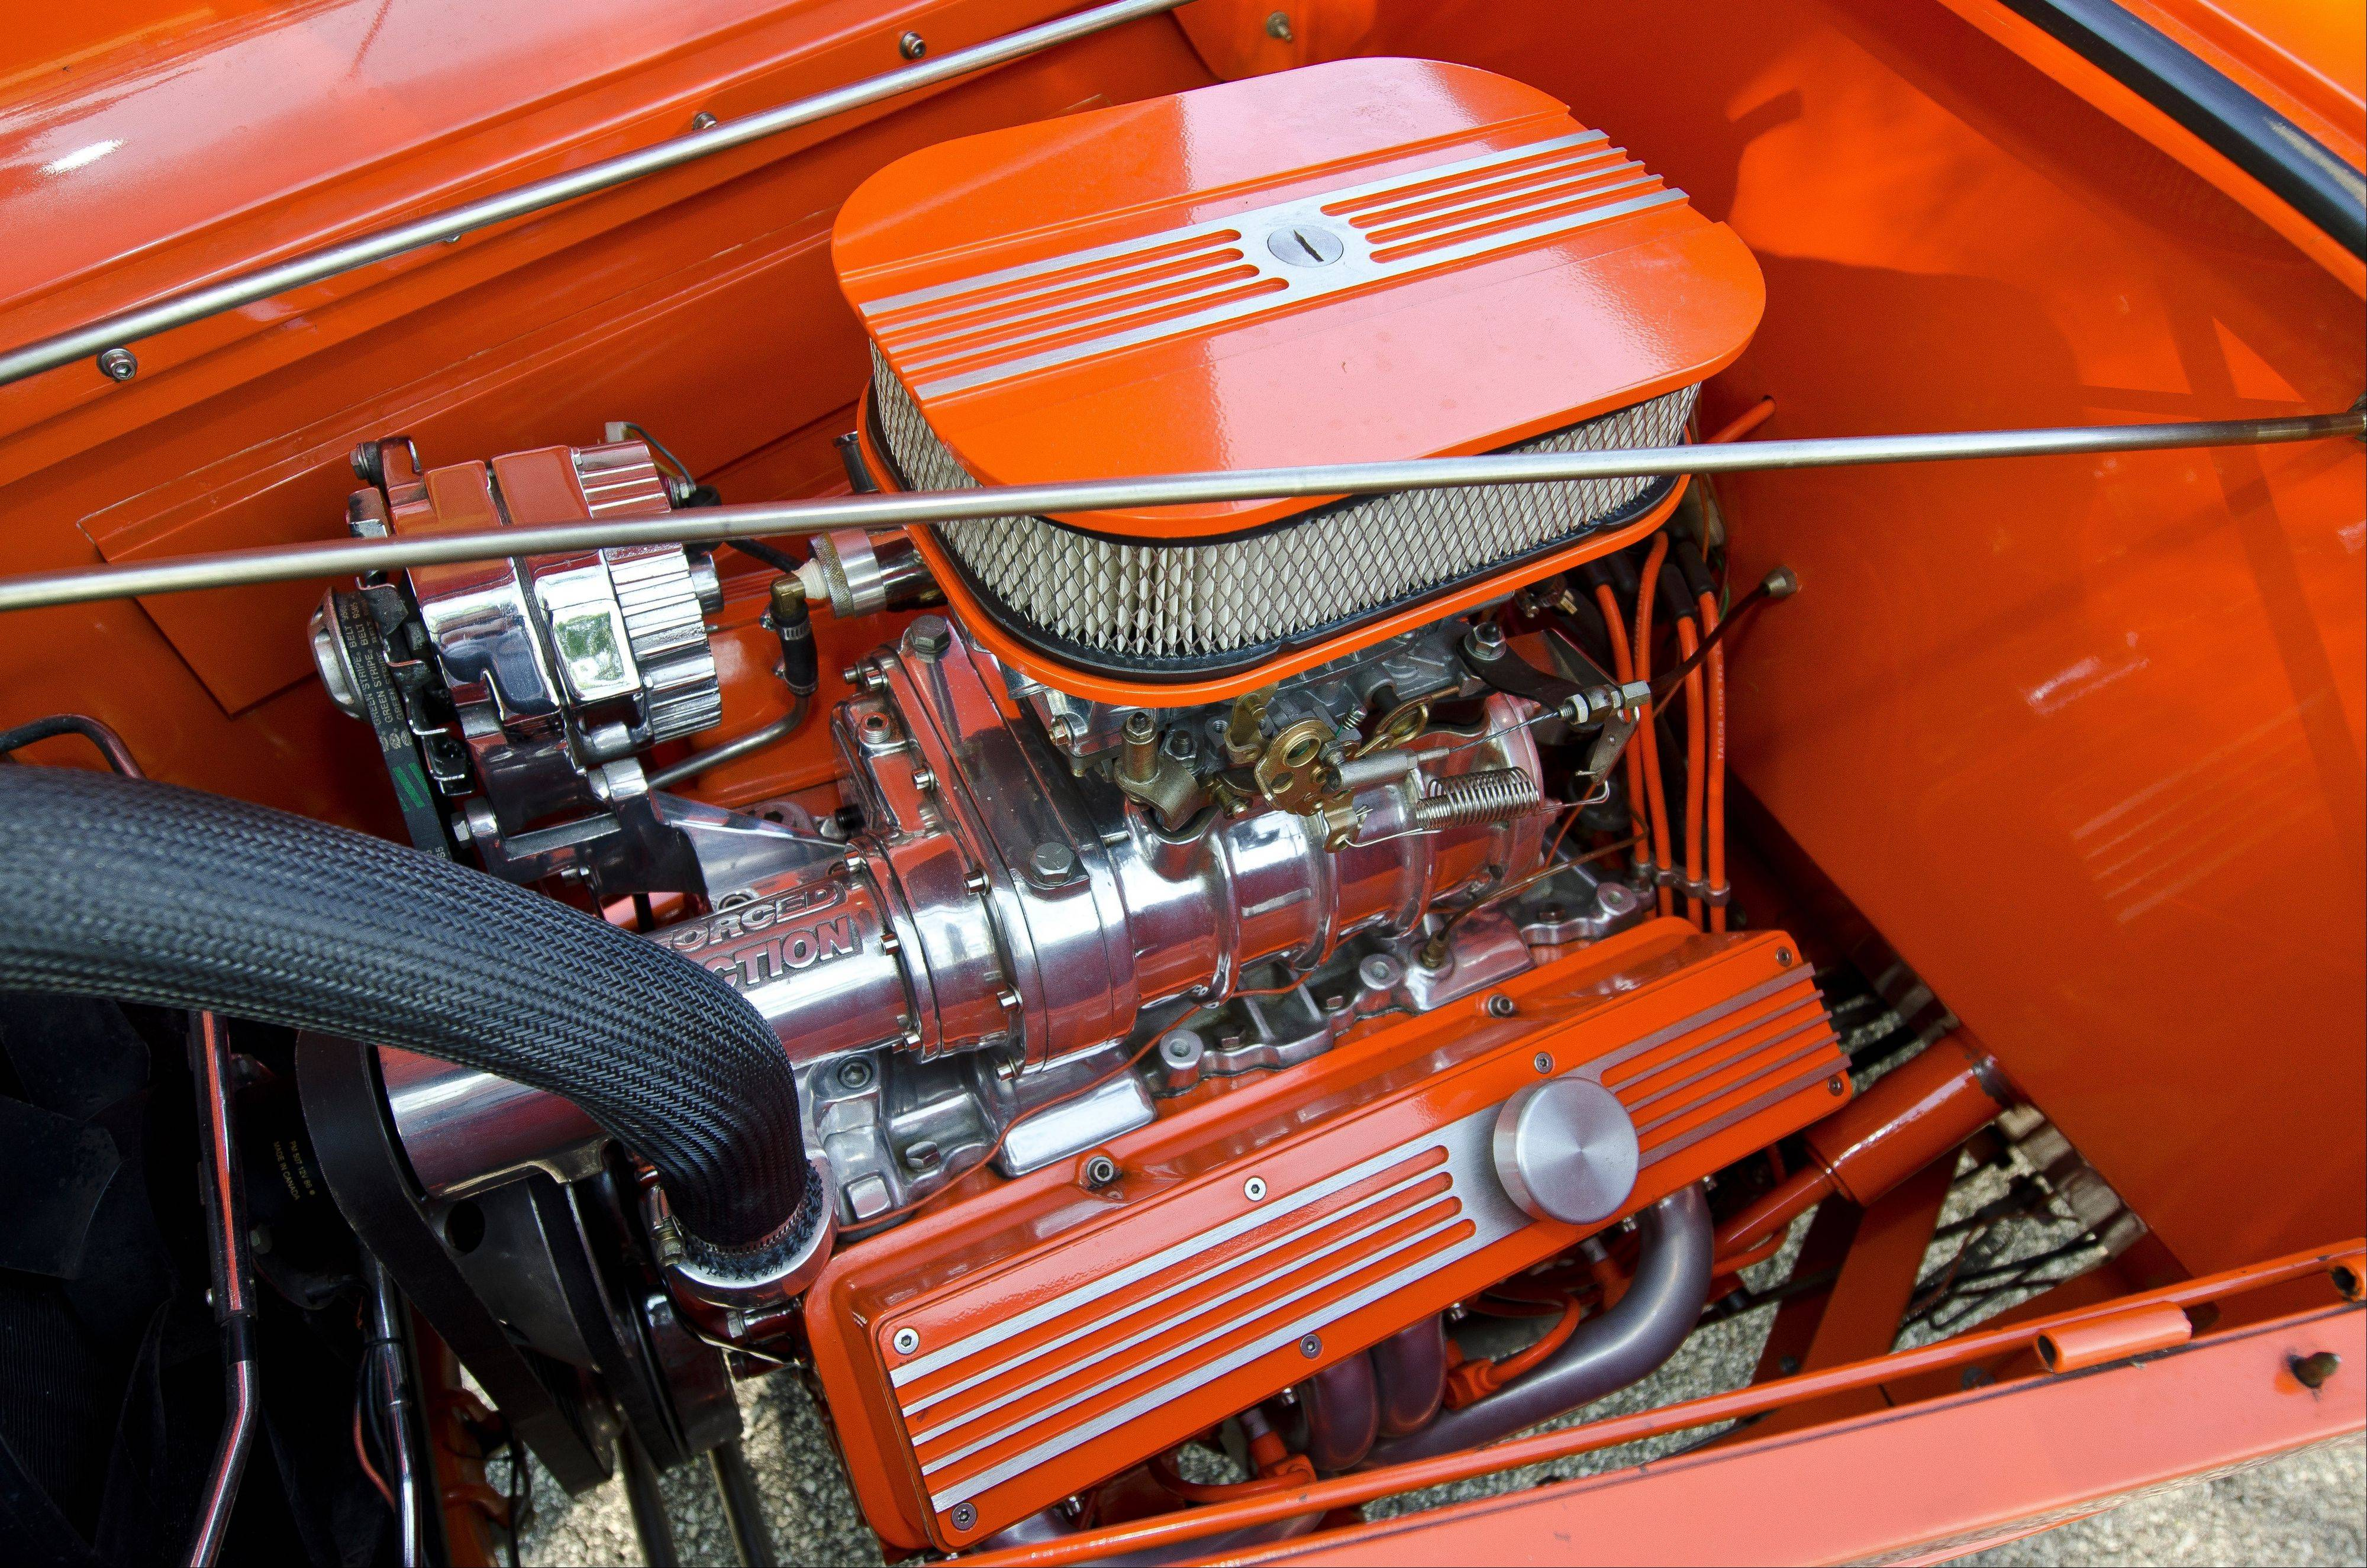 The Ford's engine was salvaged from a wrecked Corvette and modified to boost the horsepower.